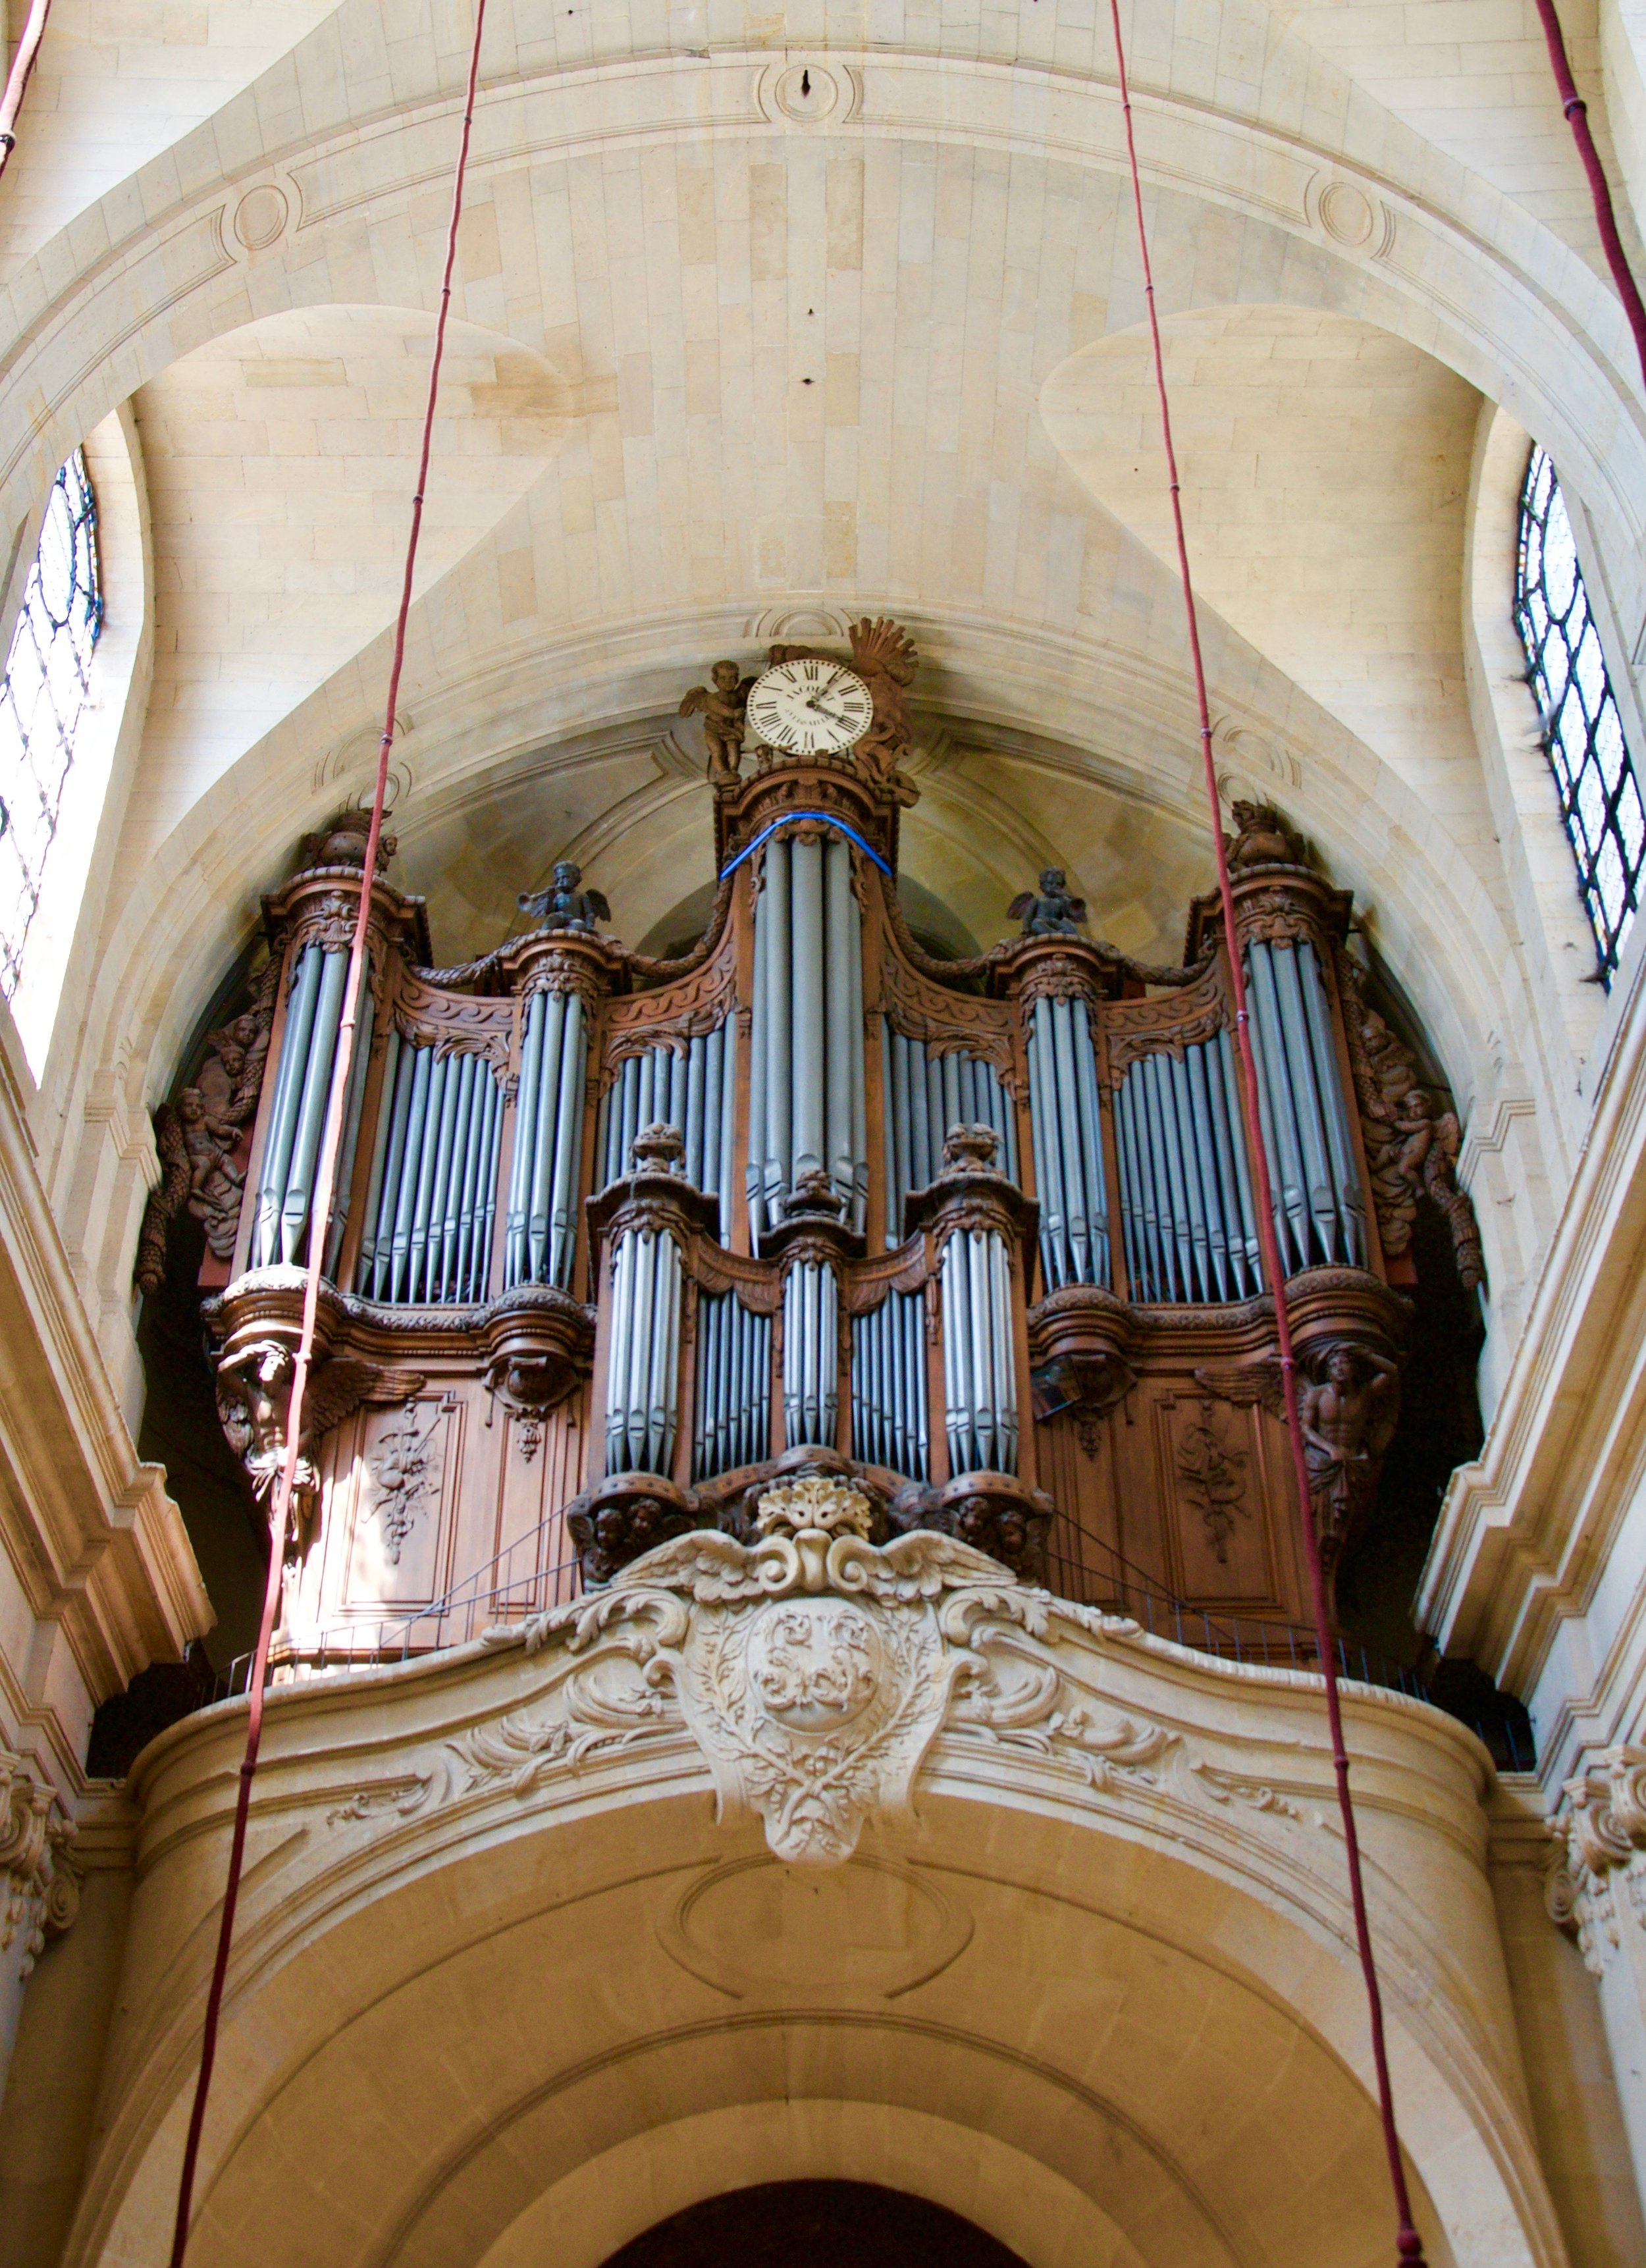 The Grand Cavaillé-Coll Organ of Saint Louis in Versailles